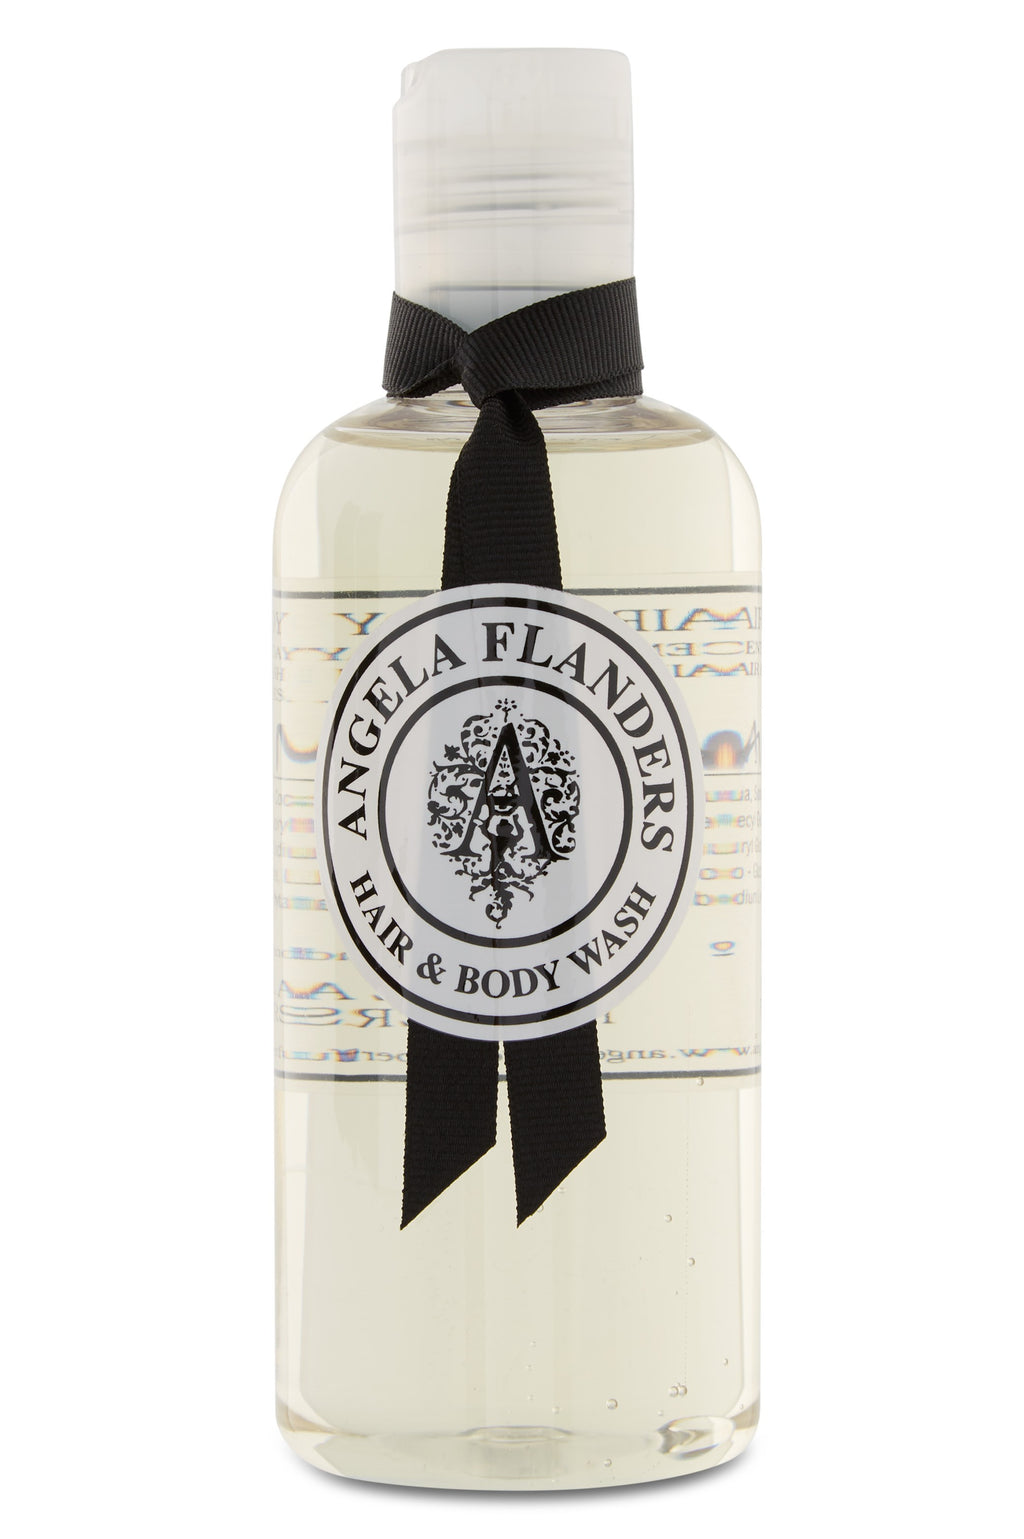 Angela Flanders Artillery No 2 Eau de Lisbonne Hair & Body Wash